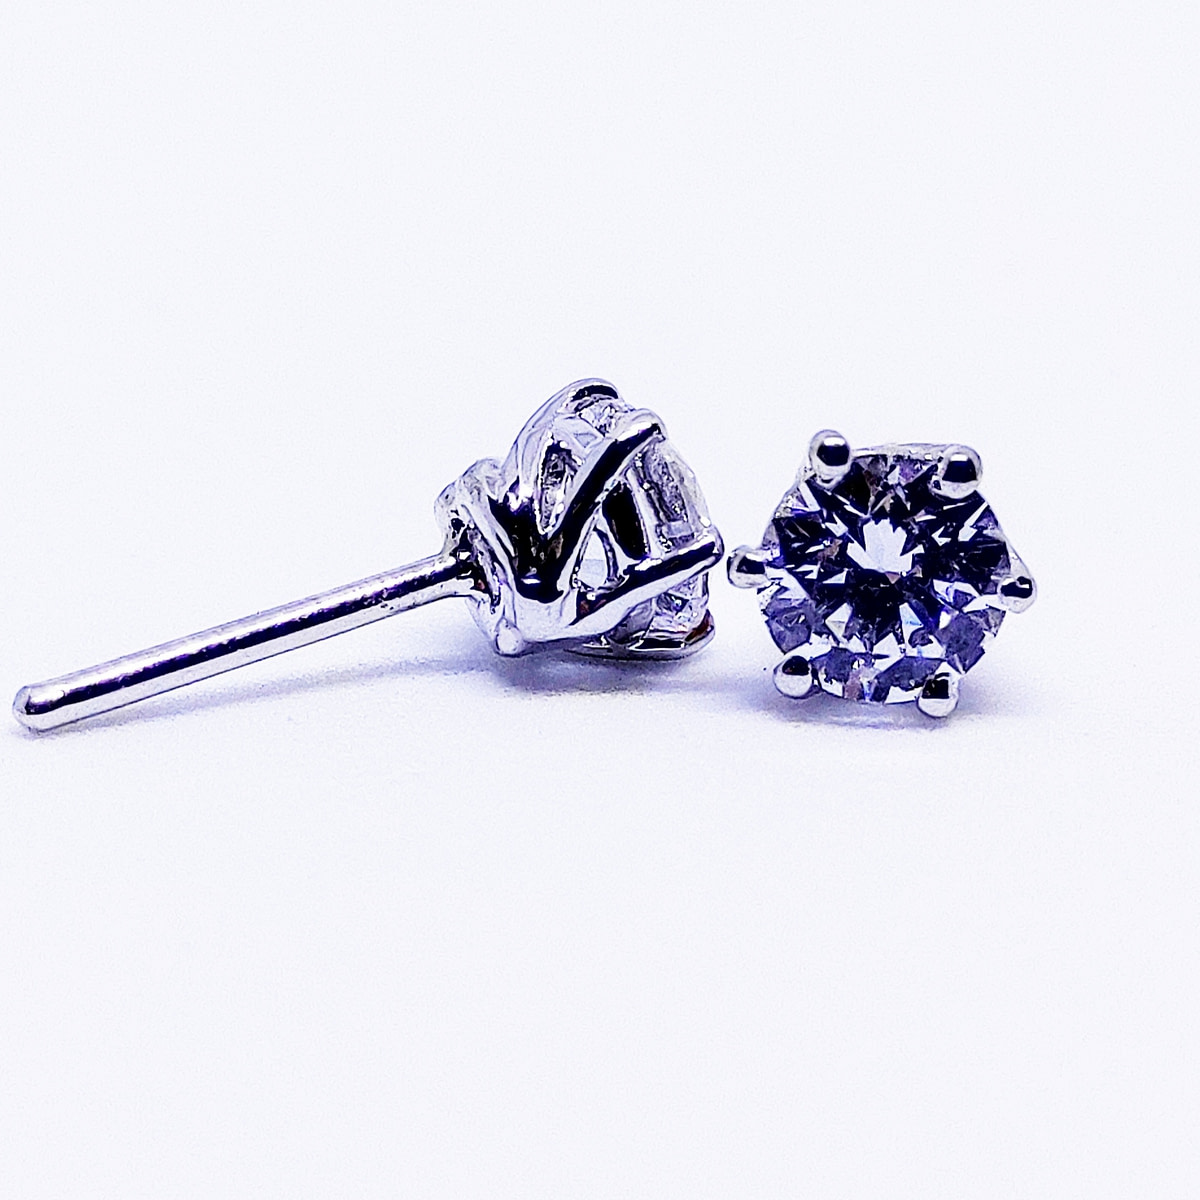 CLASSIC - Solitaire Earrings in Six Prongs